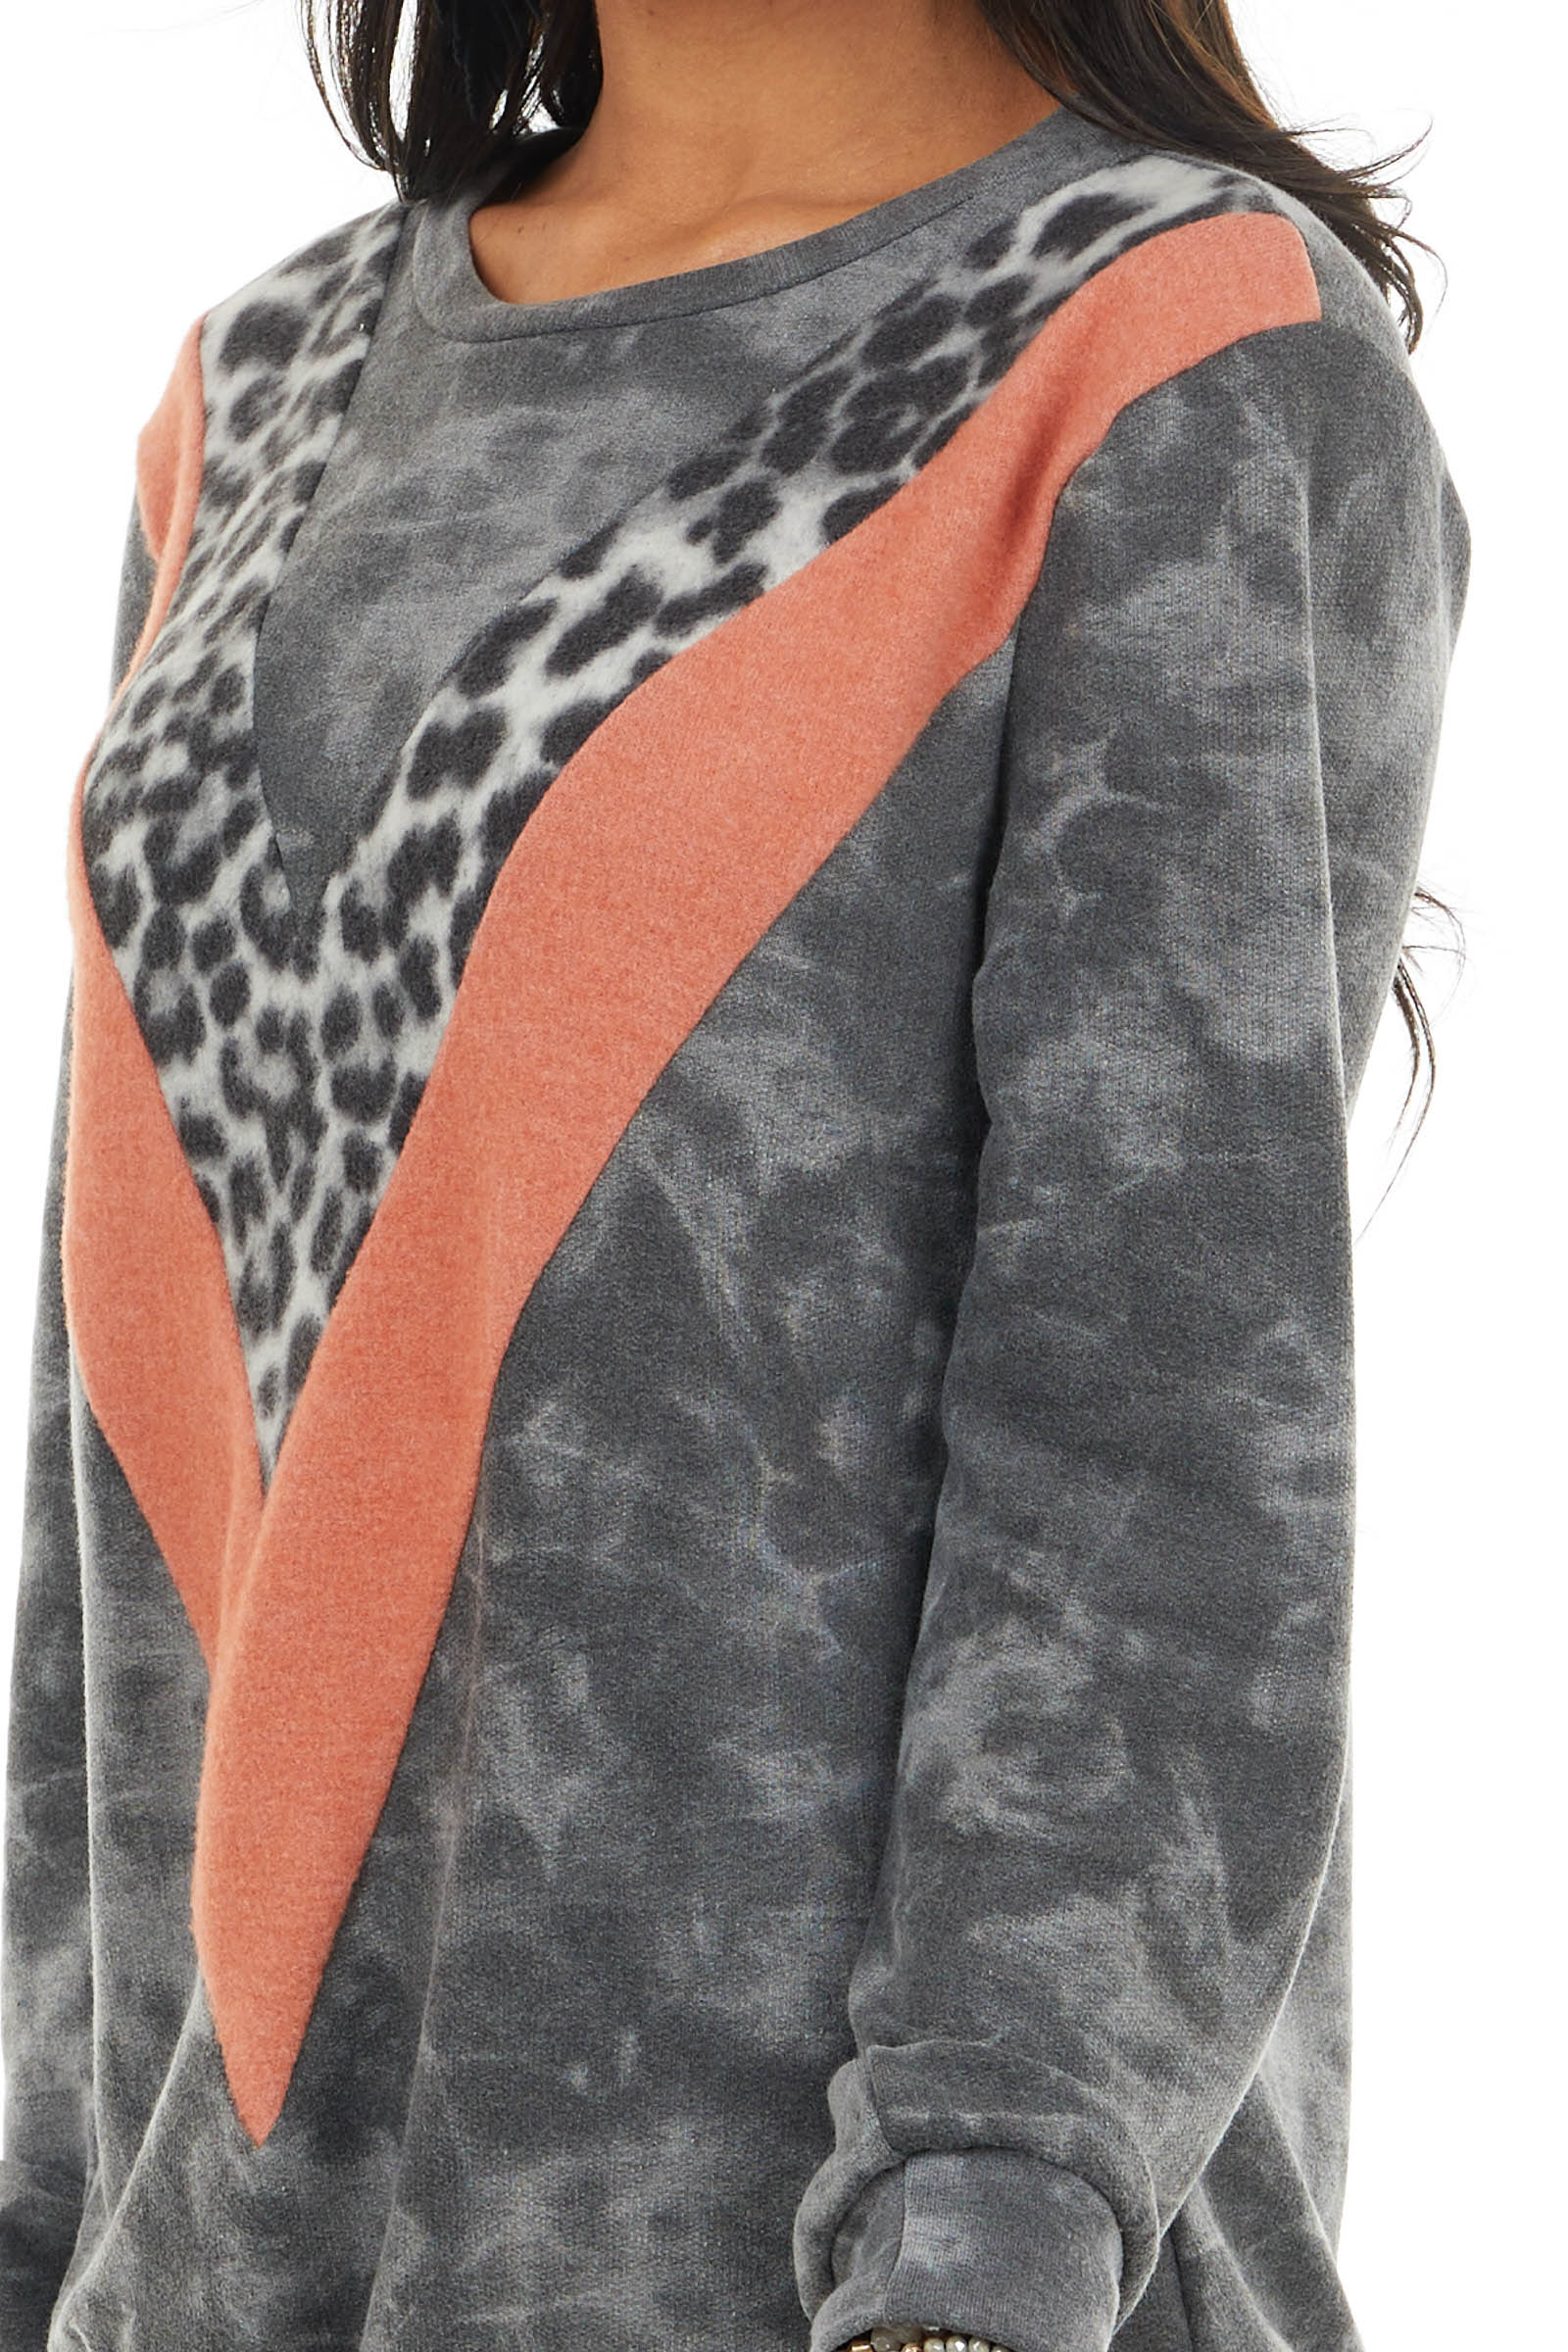 Charcoal and Tangerine Knit Top with Leopard Print Detail